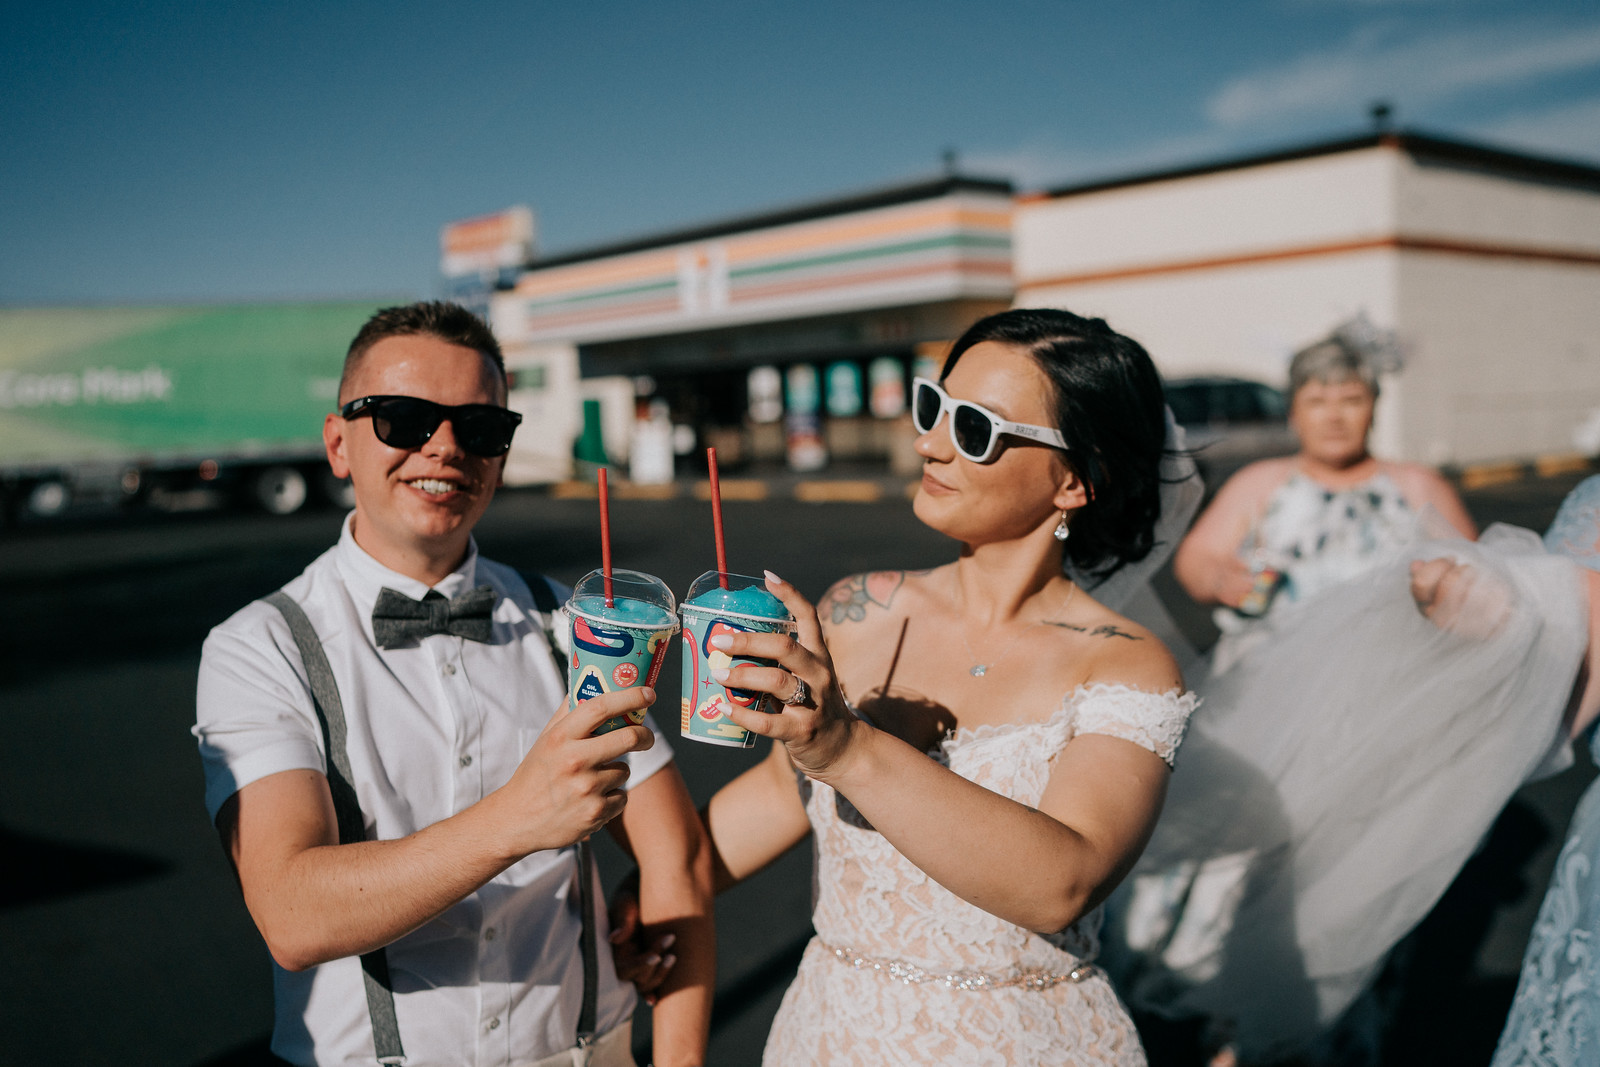 The couple smile and show their slushes from 7 Eleven, celebrating their wedding with family and friends